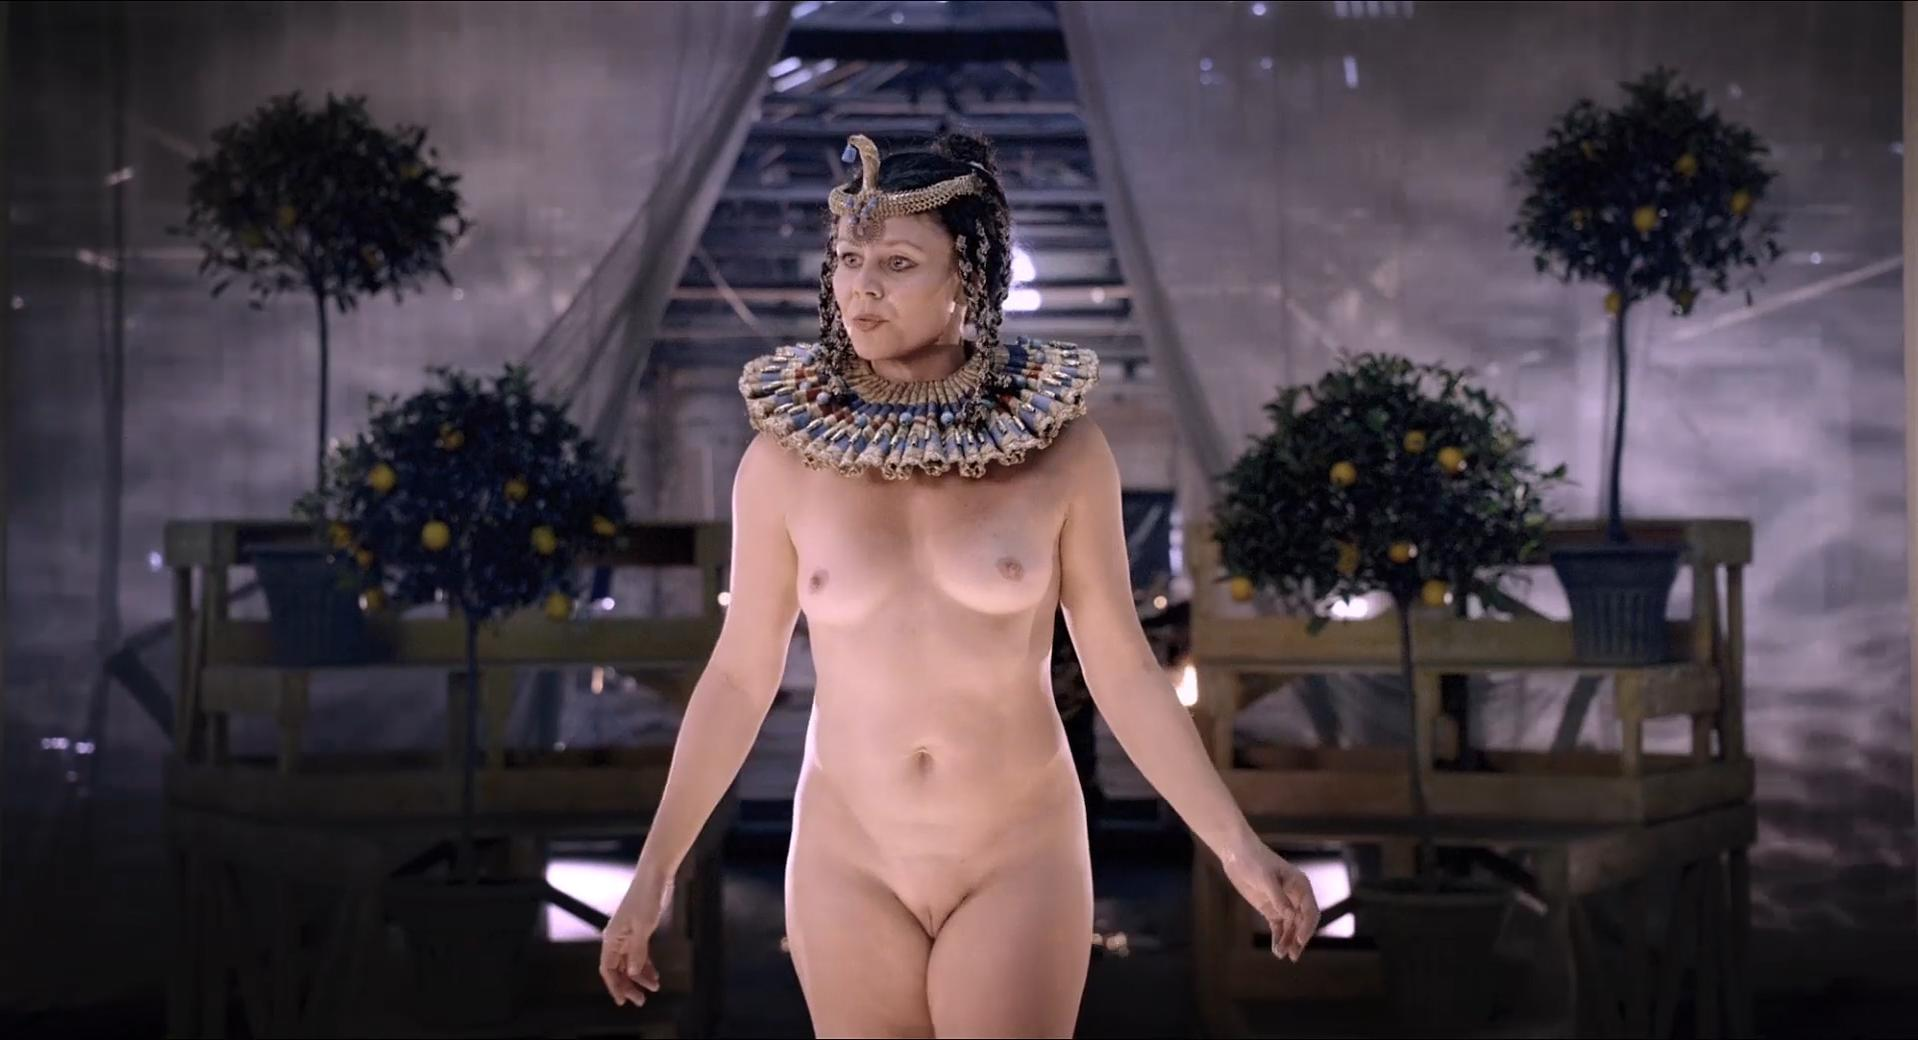 Female celebrities naked in movies, naked gucci mane